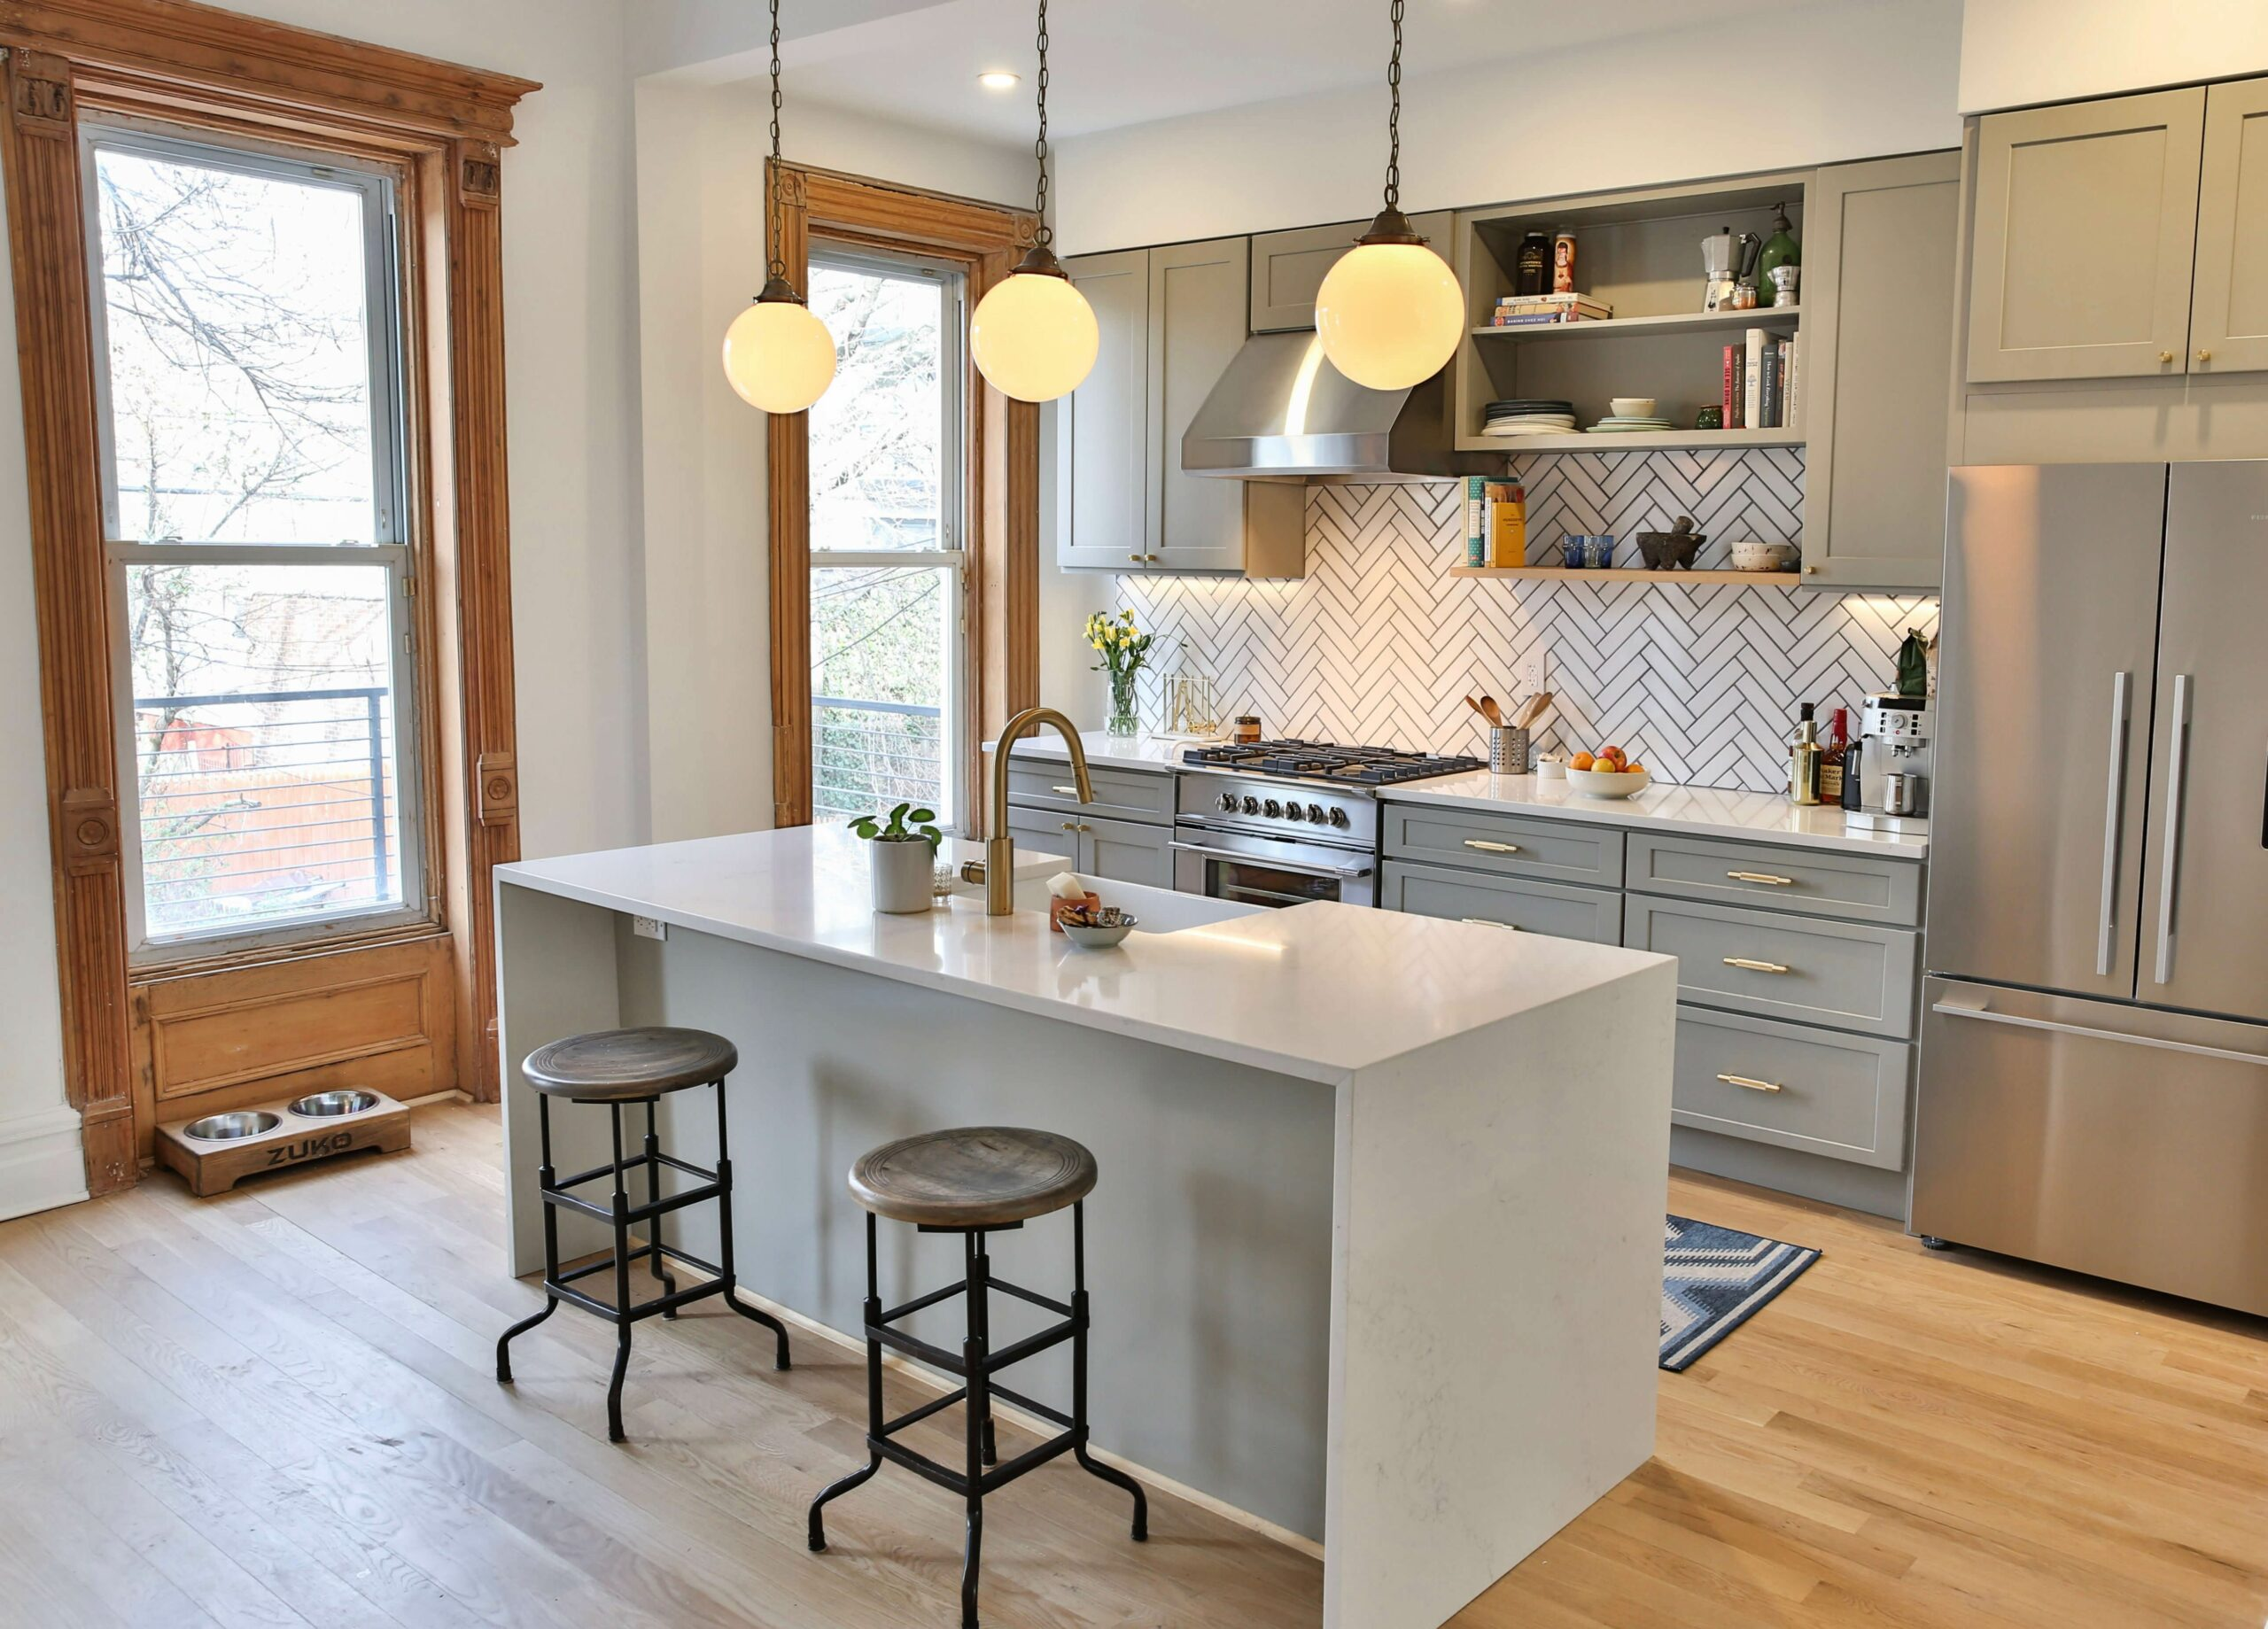 Brownstone Boys: Top 12 Hacks for an Inexpensive Kitchen Renovation ..